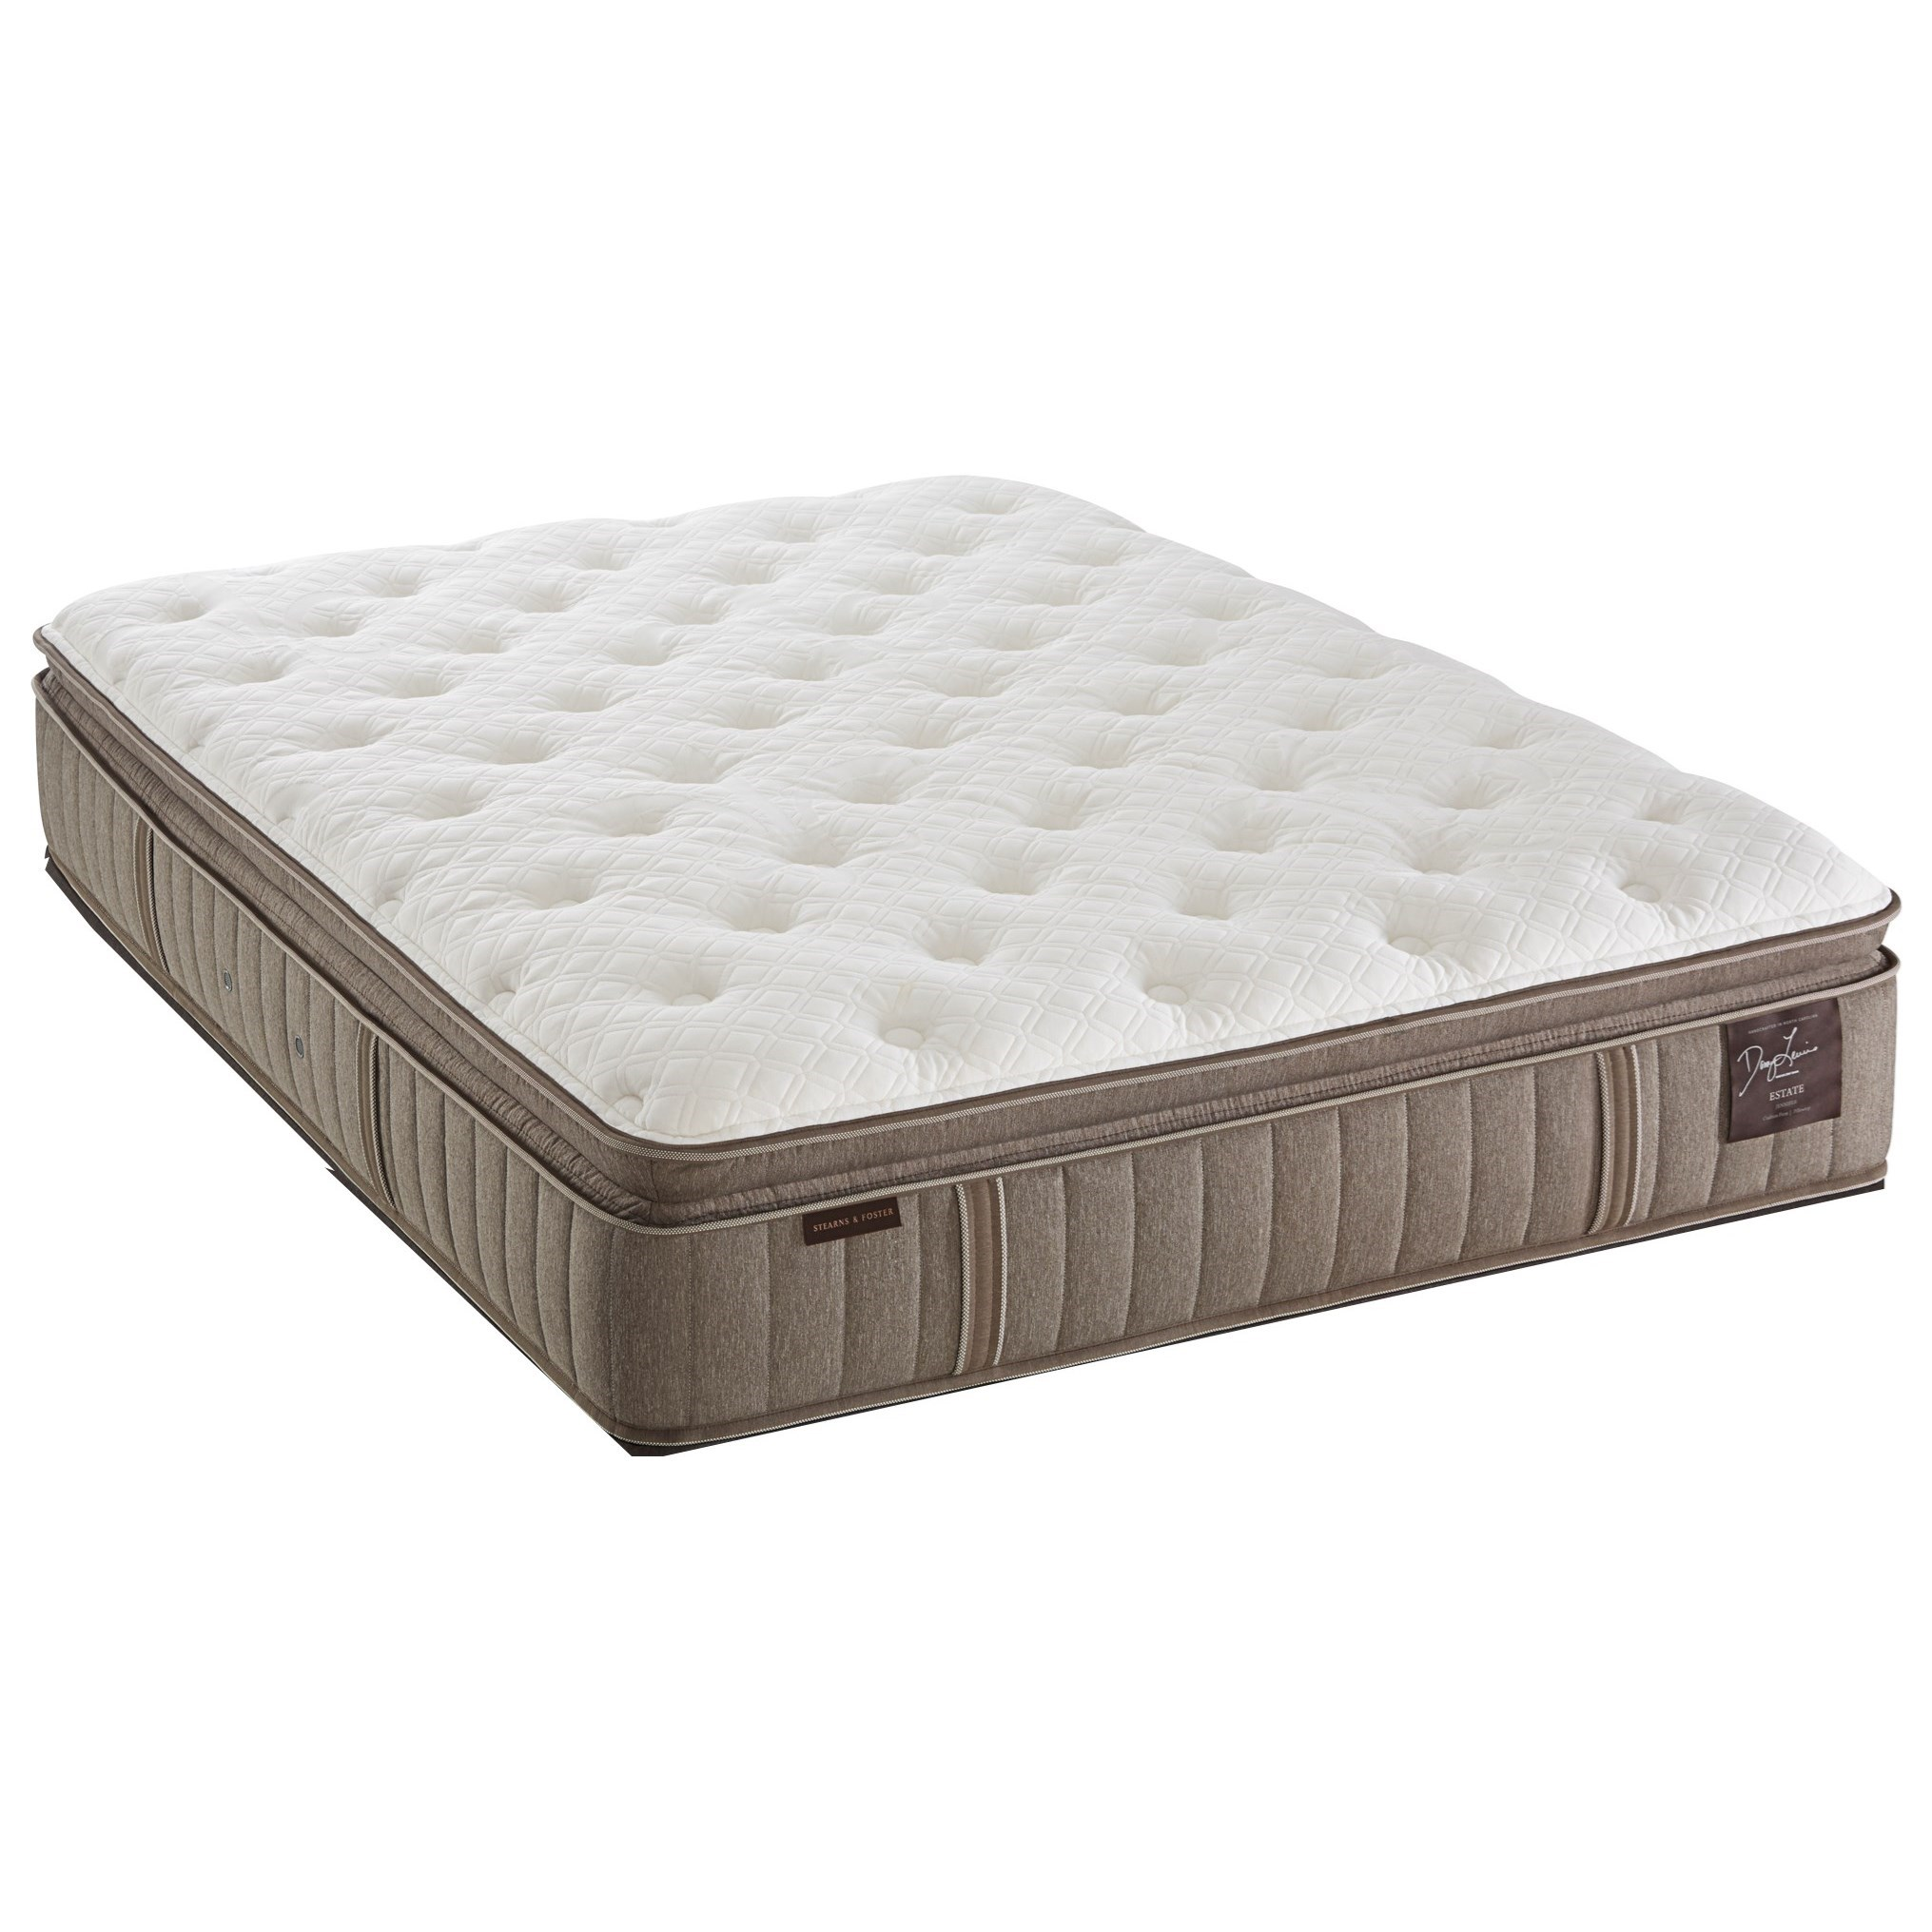 Stearns & Foster F4 Estate Plush EPT 2016 Full Plush Euro PT Mattress - Item Number: PlushEPT-F